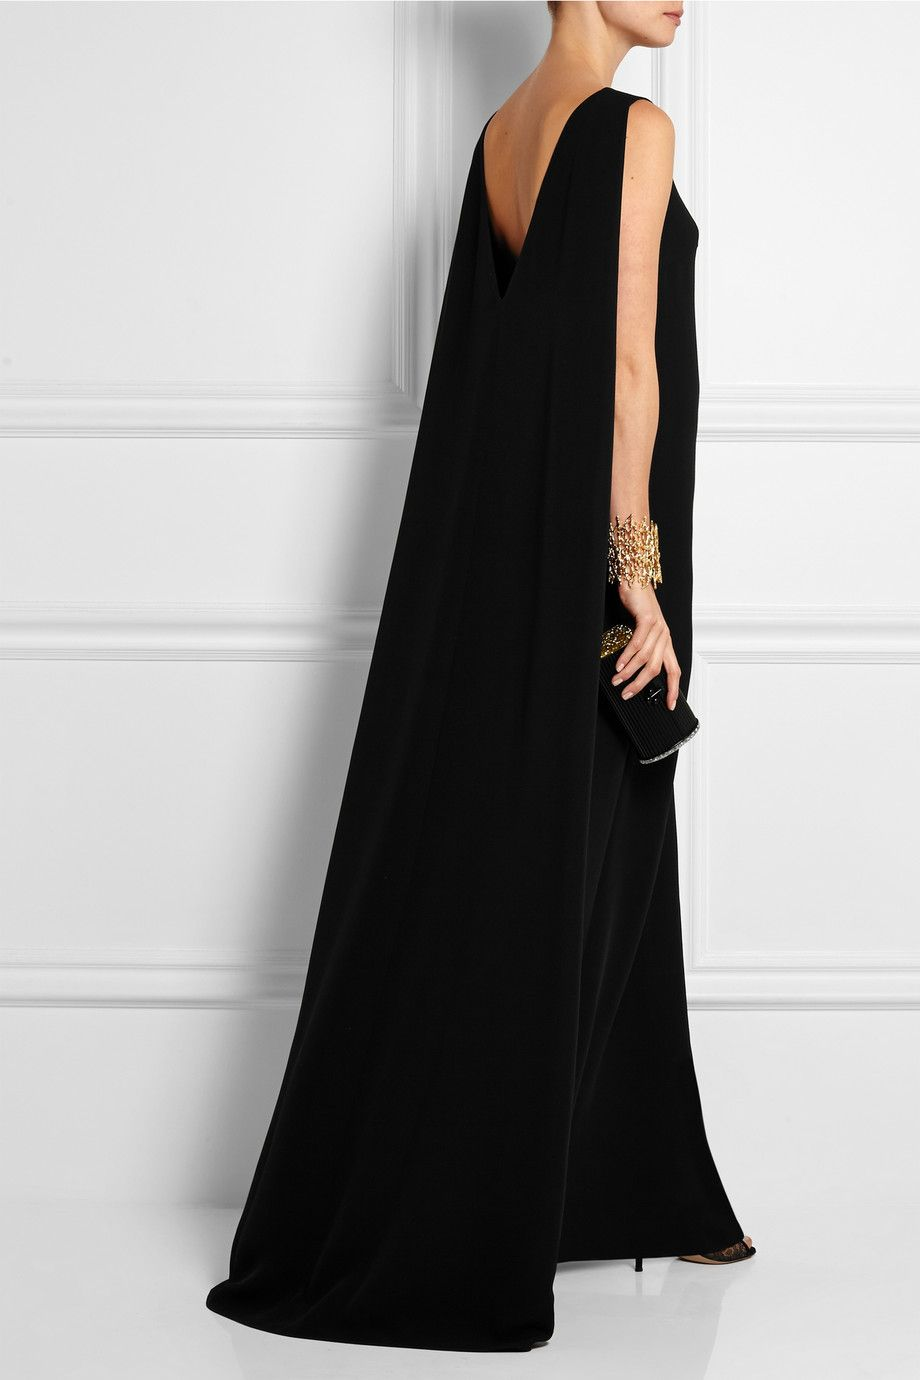 Le Meilleur Valentino Silk Cady Gown Net A Porter Com Things To Ce Mois Ci